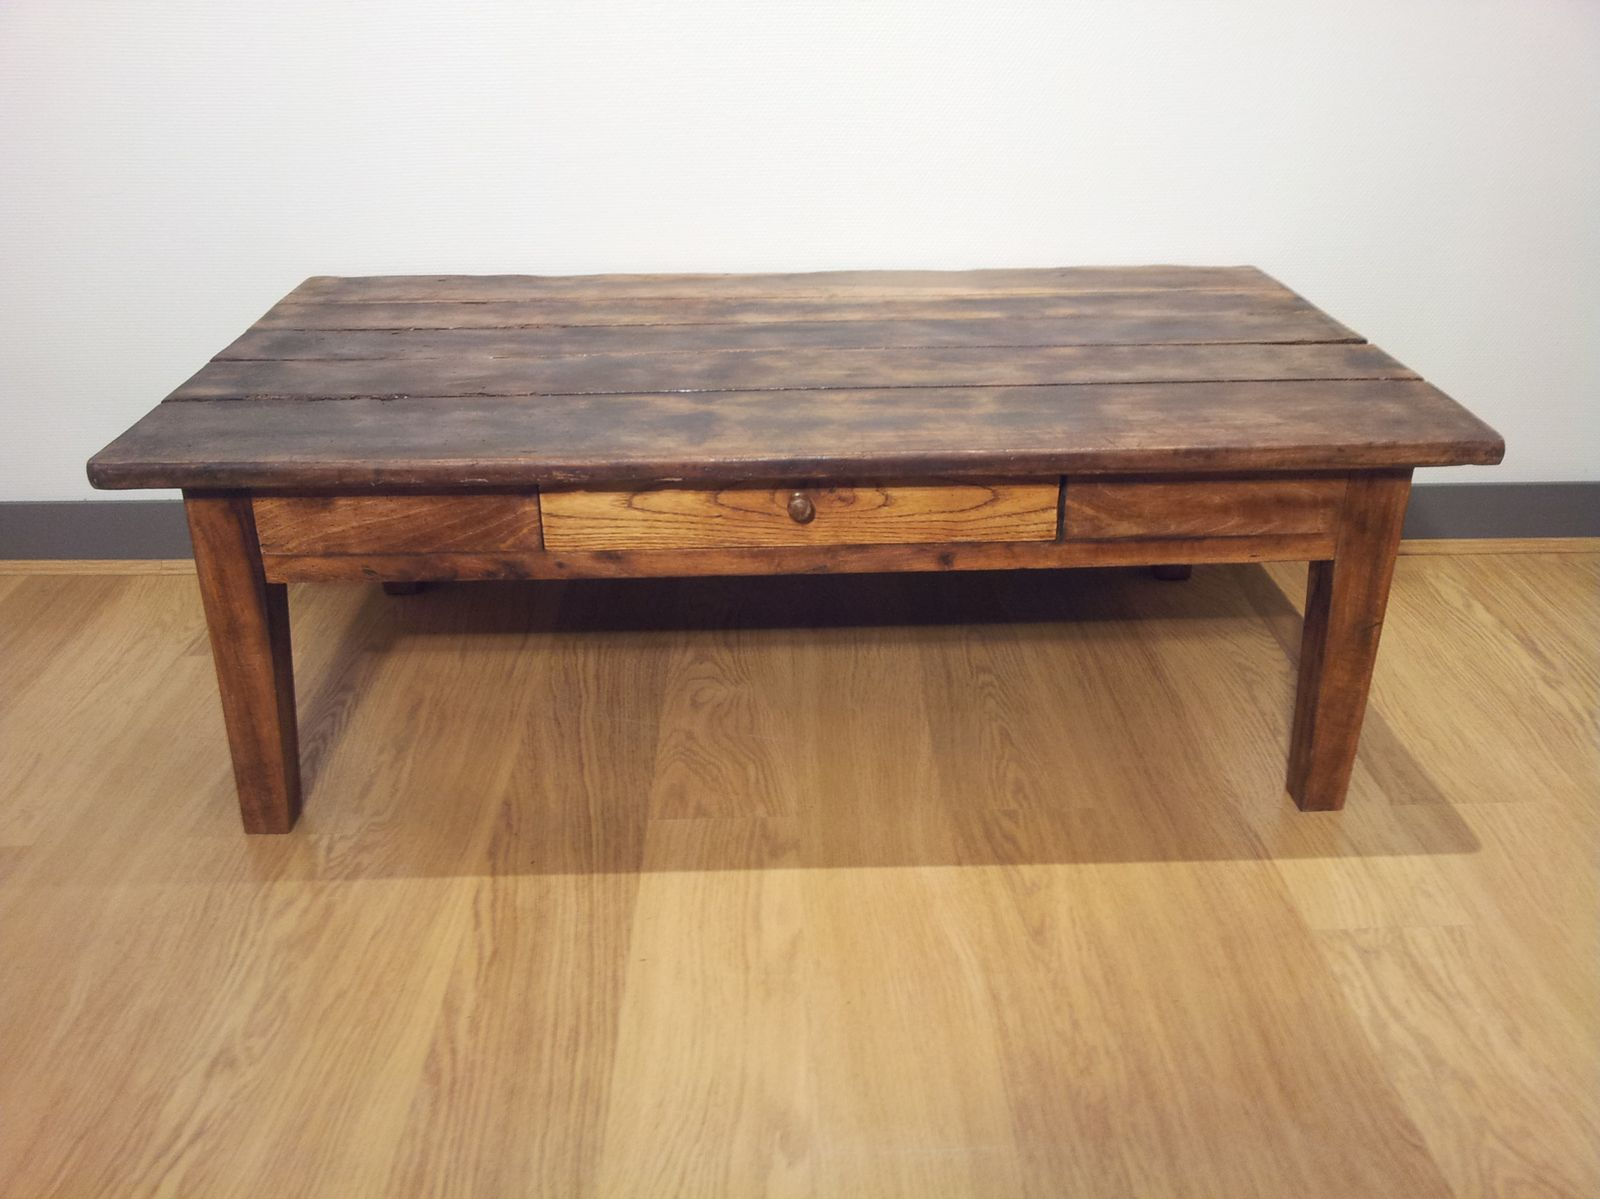 Grande Table Basse Carree Bois Maison Design Hosnya